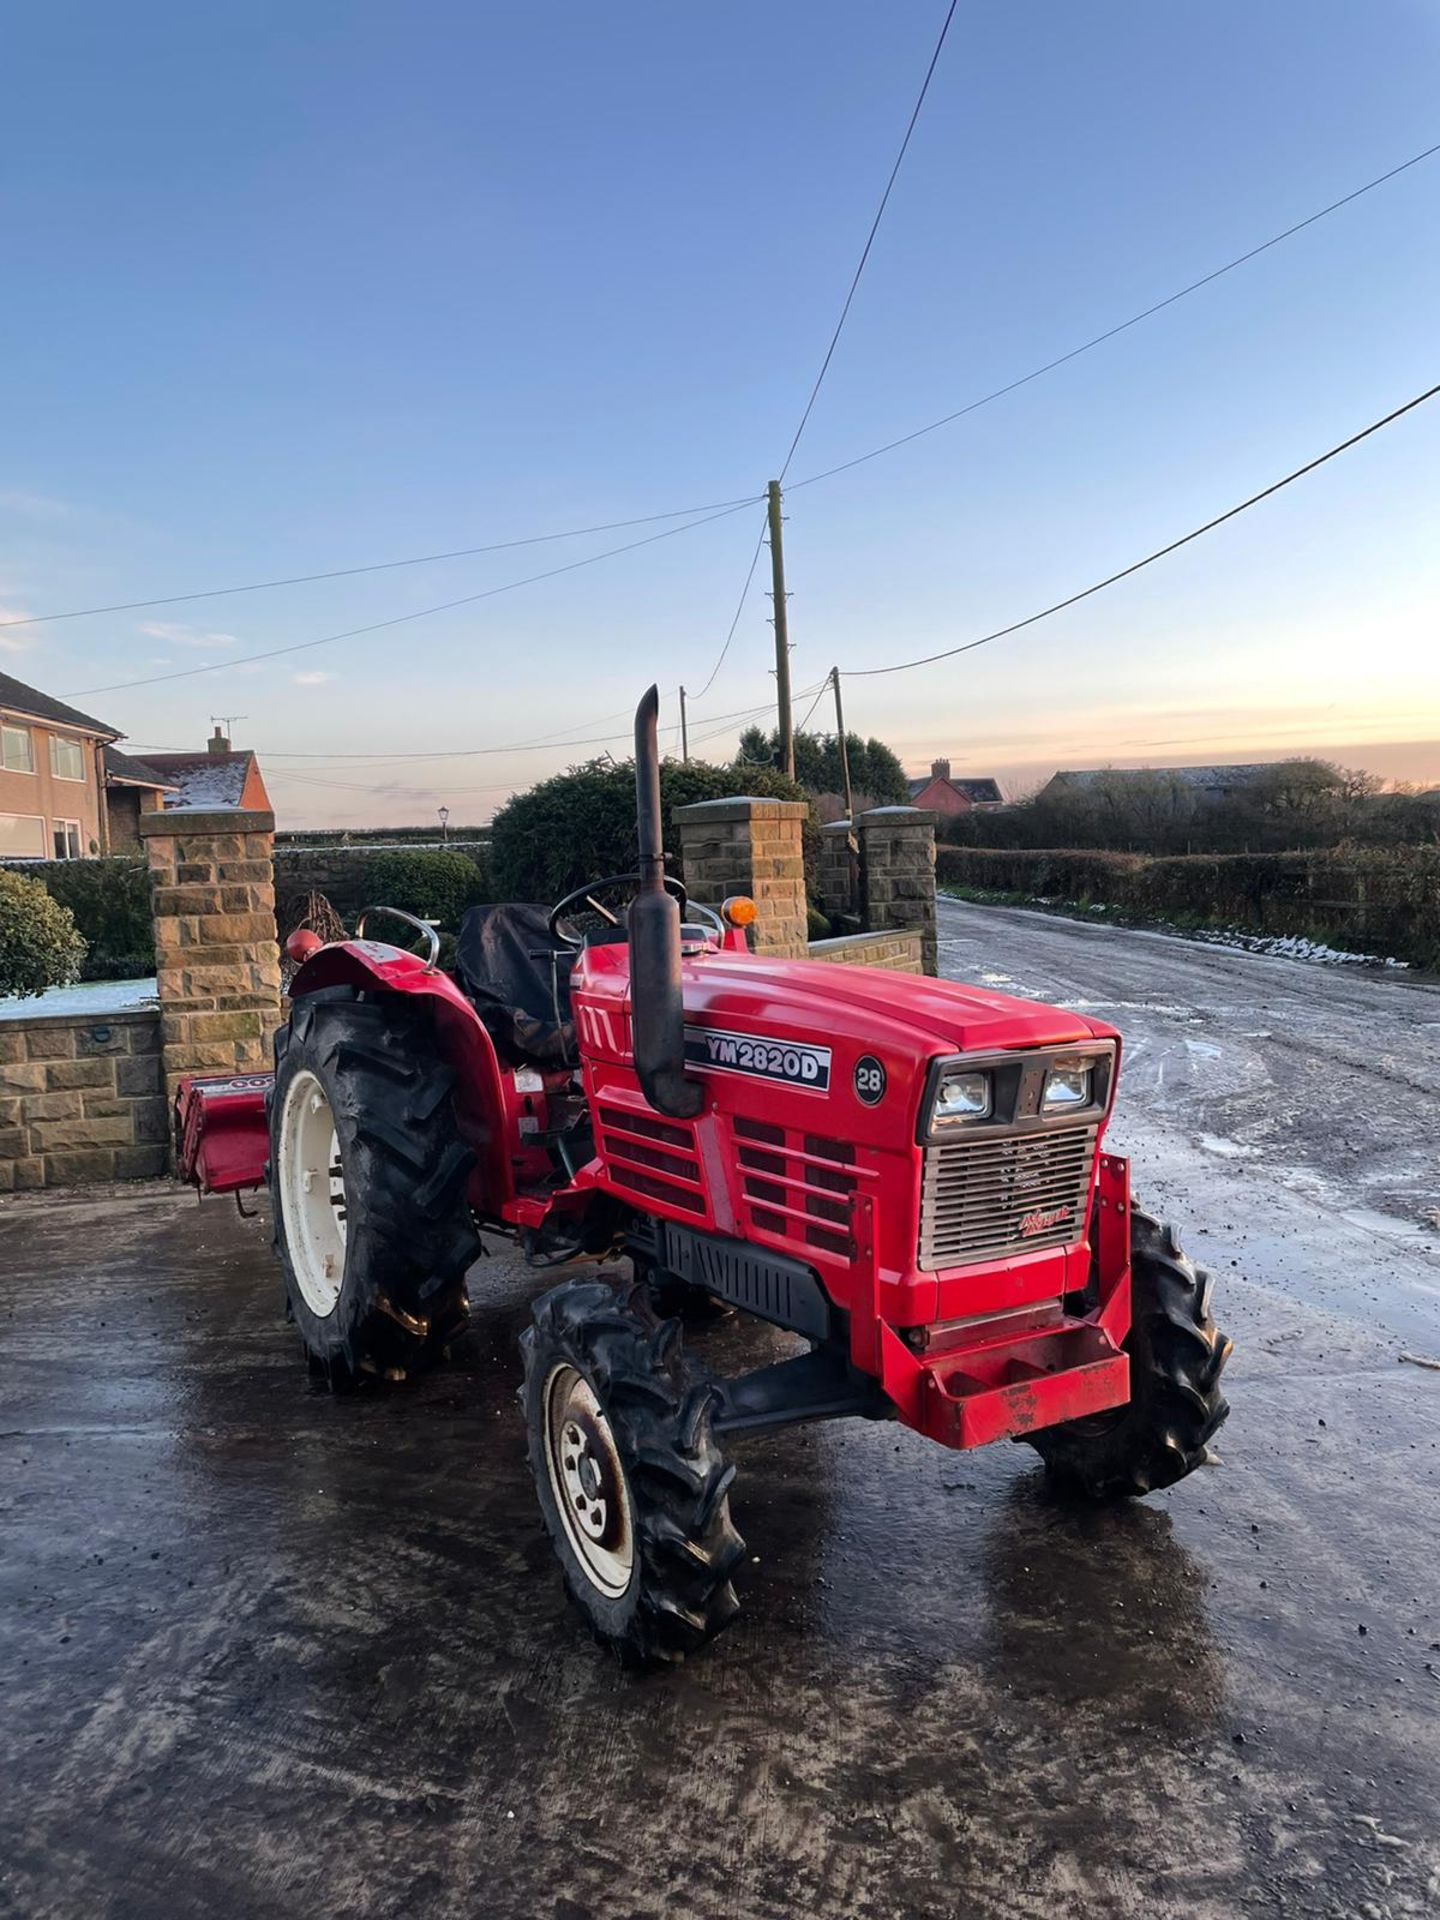 YANMAR YM2820D TRACTOR, 4 WHEEL DRIVE, WITH ROTATOR, RUNS AND WORKS, 3 POINT LINKAGE *PLUS VAT* - Image 3 of 8